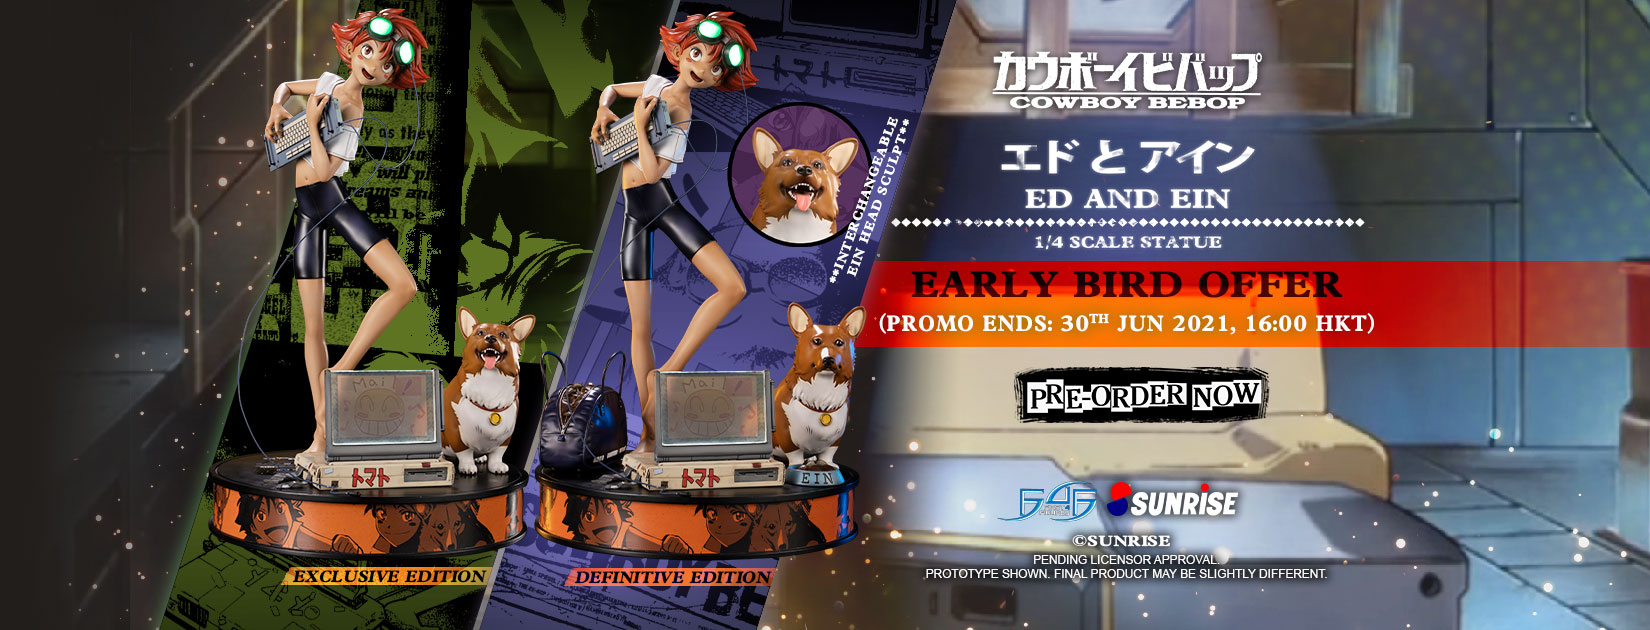 Cowboy Bebop – Ed and Ein statue Early Bird Offer